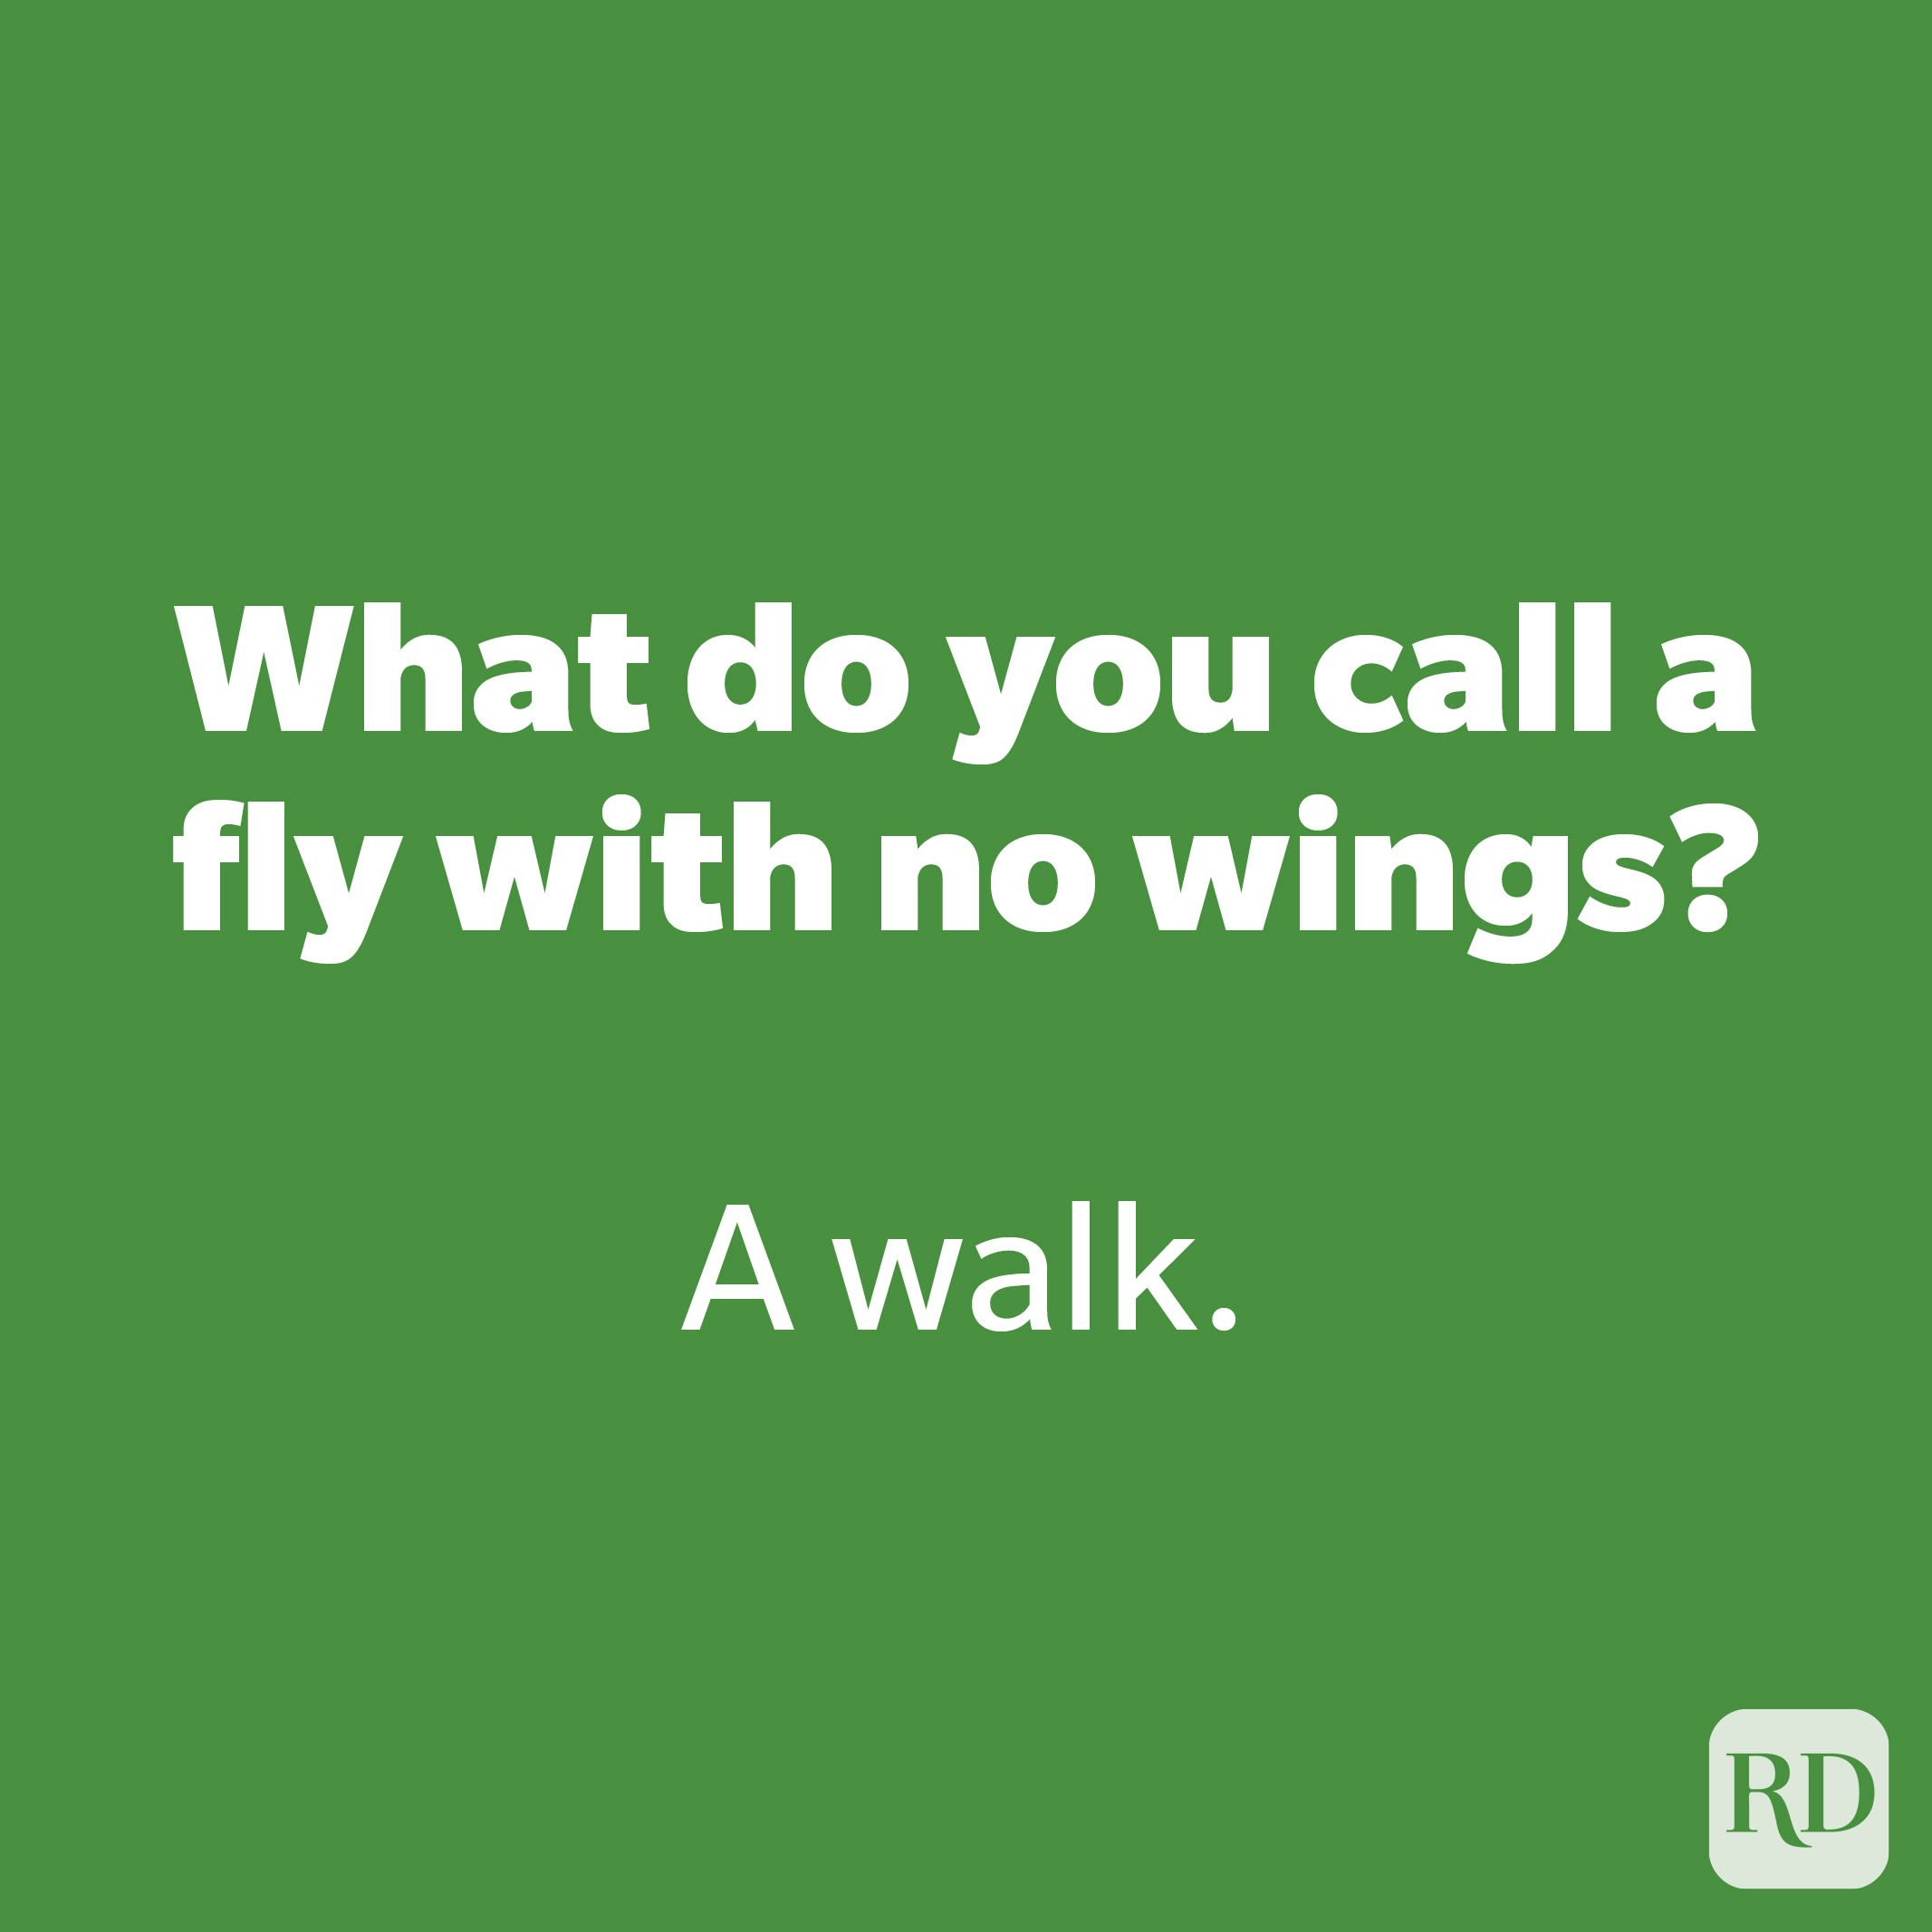 What do you call a fly with no wings?